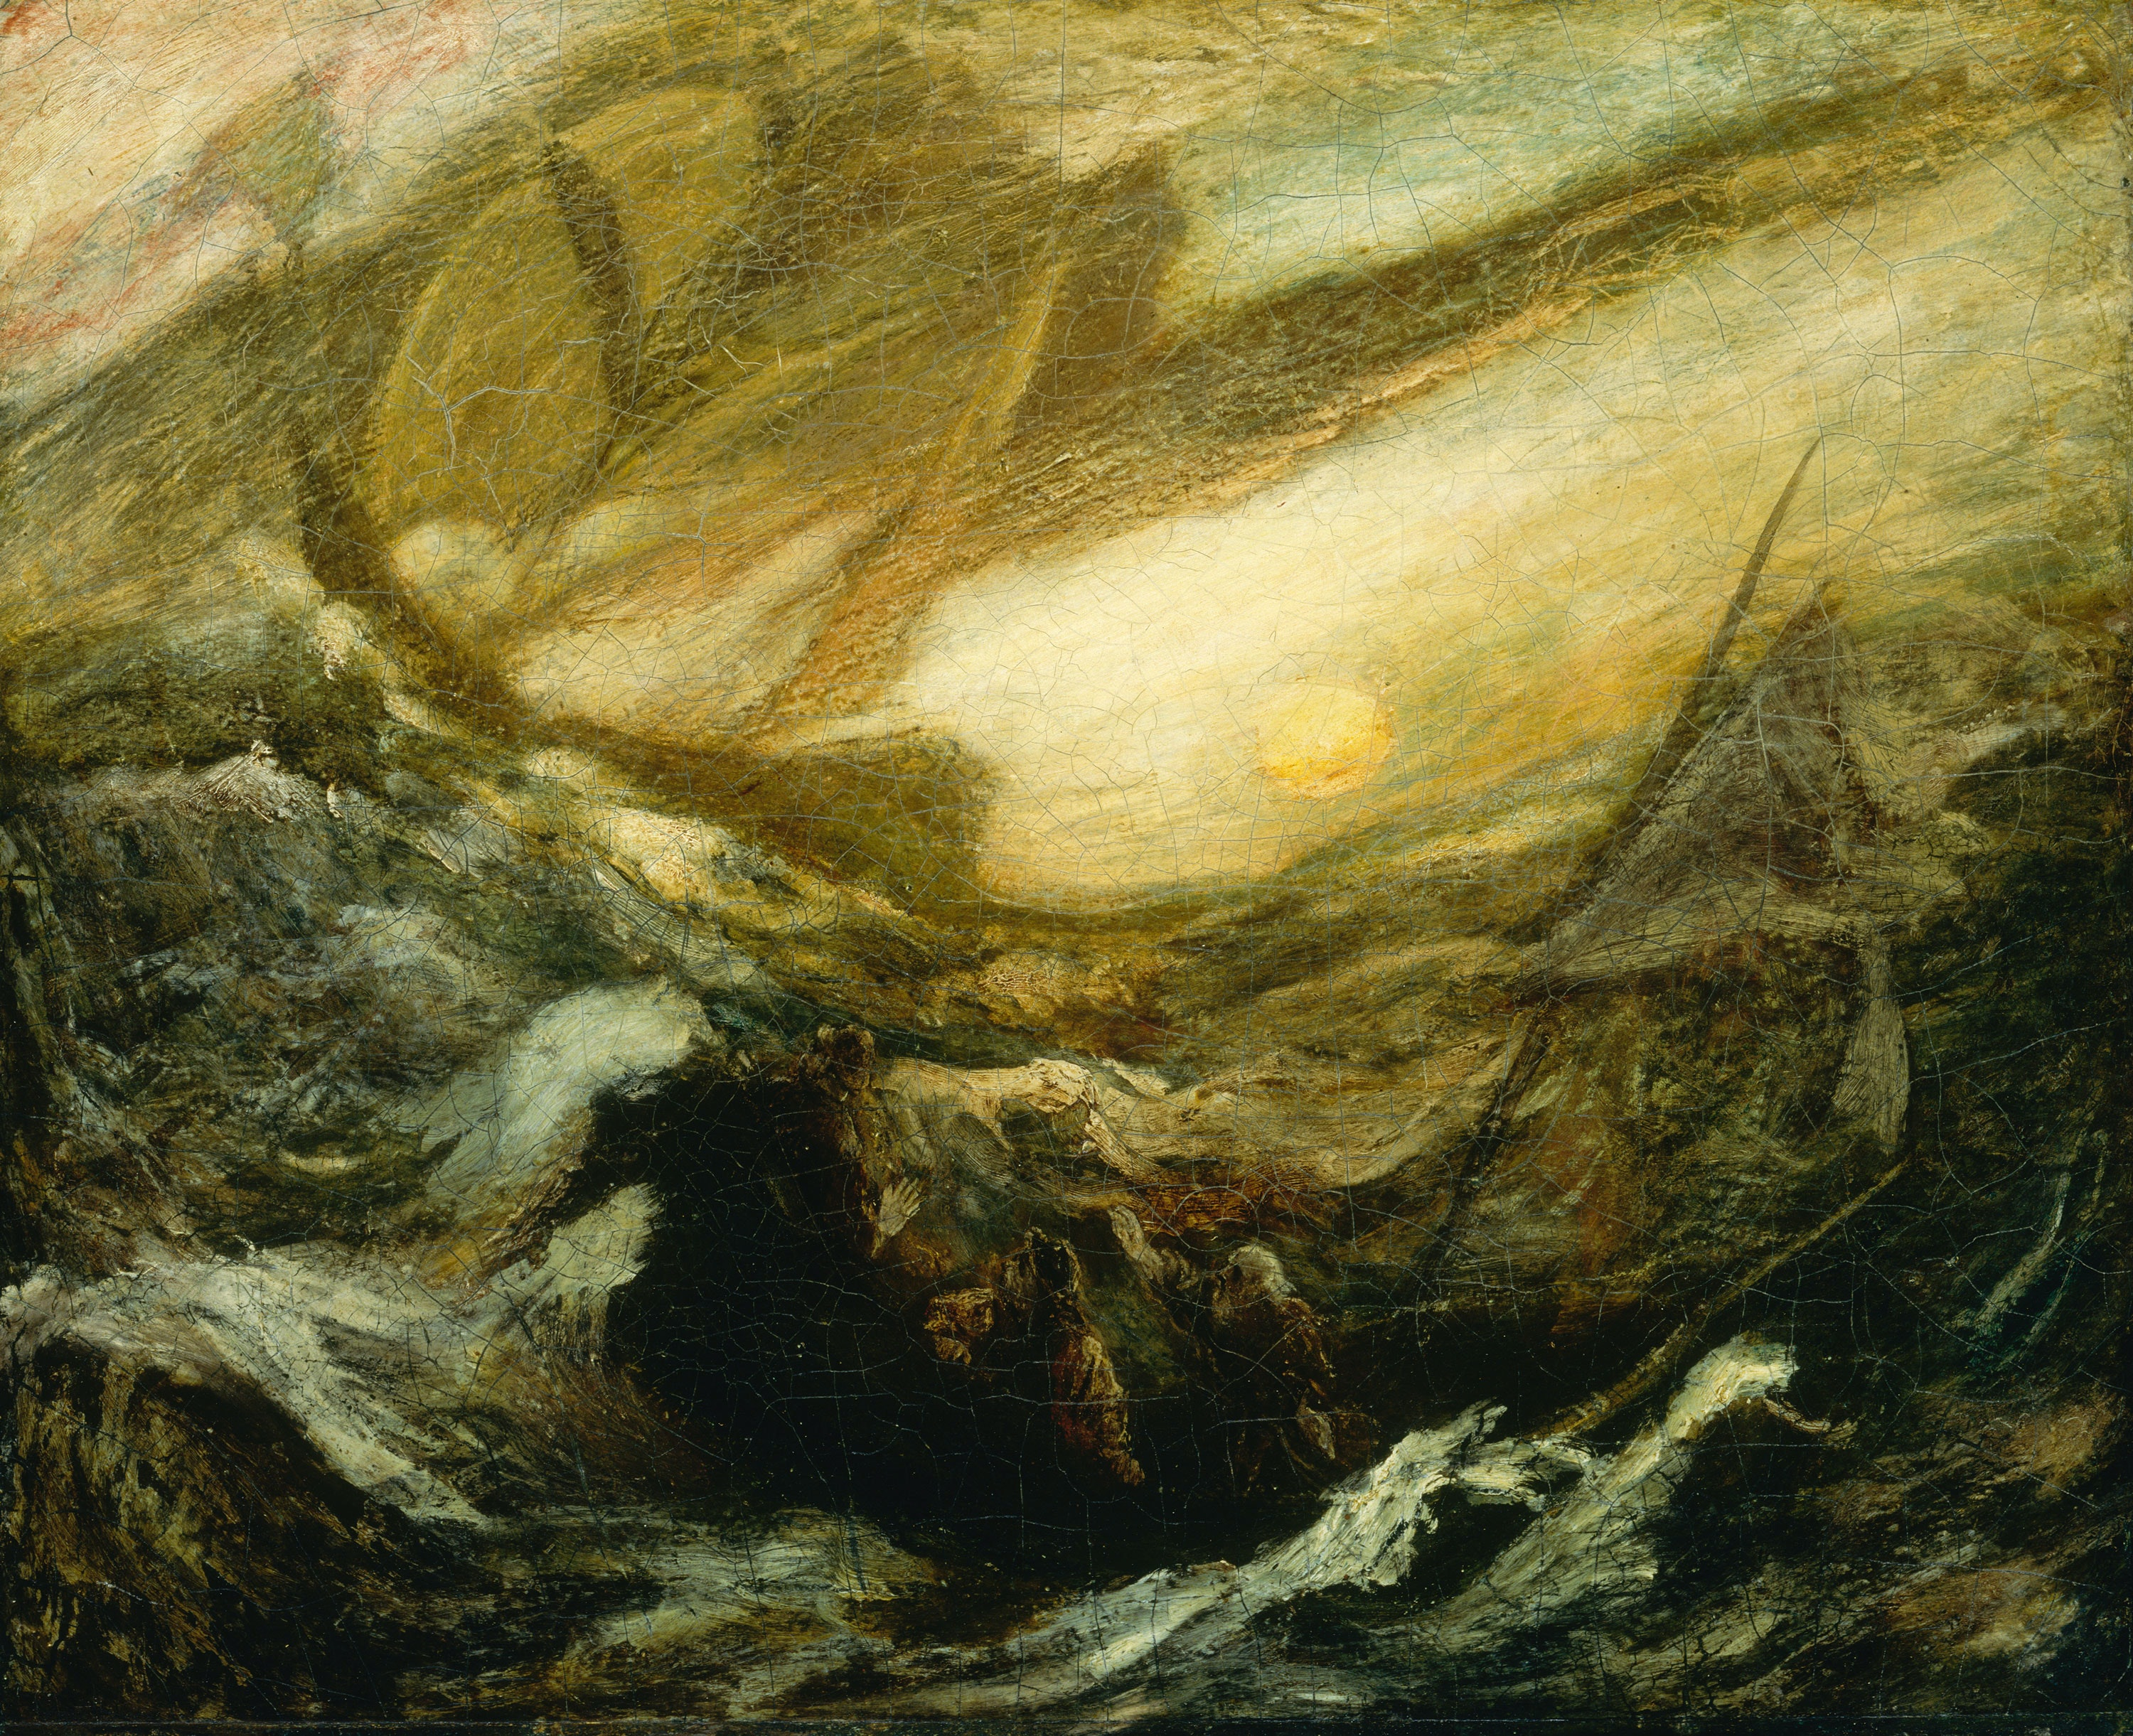 Albert Pinkham Ryder, <em>Flying Dutchman</em>, completed by 1887. Oil on canvas mounted on fiberboard, 14 1/4 x 17 1/4 inches. Smithsonian American Art Museum, Gift of John Gellatly.